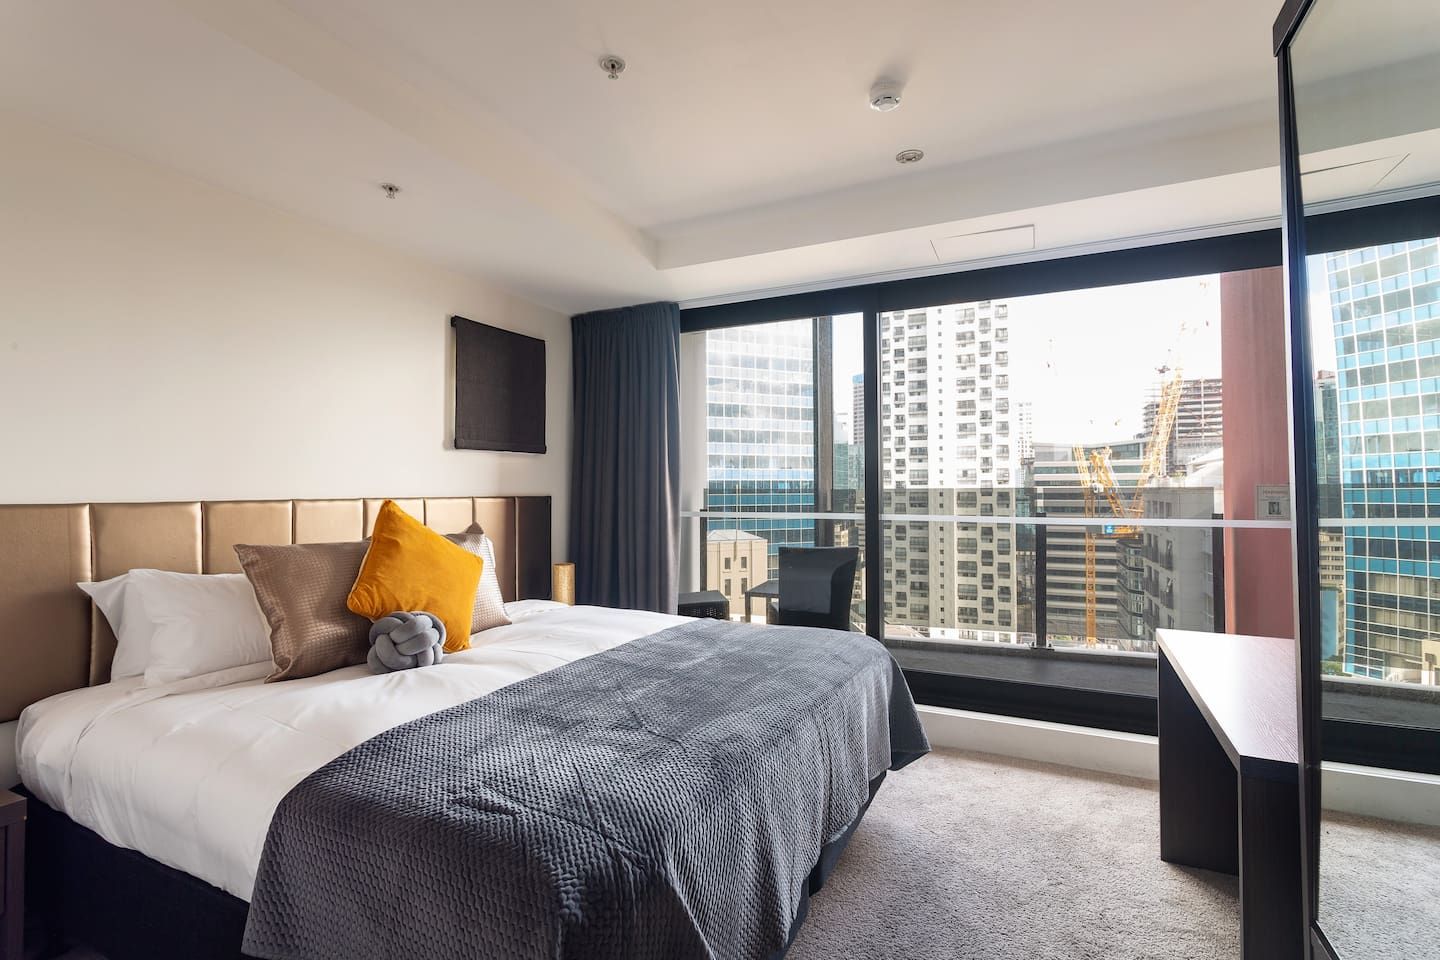 Master bedroom with view out to city from balcony